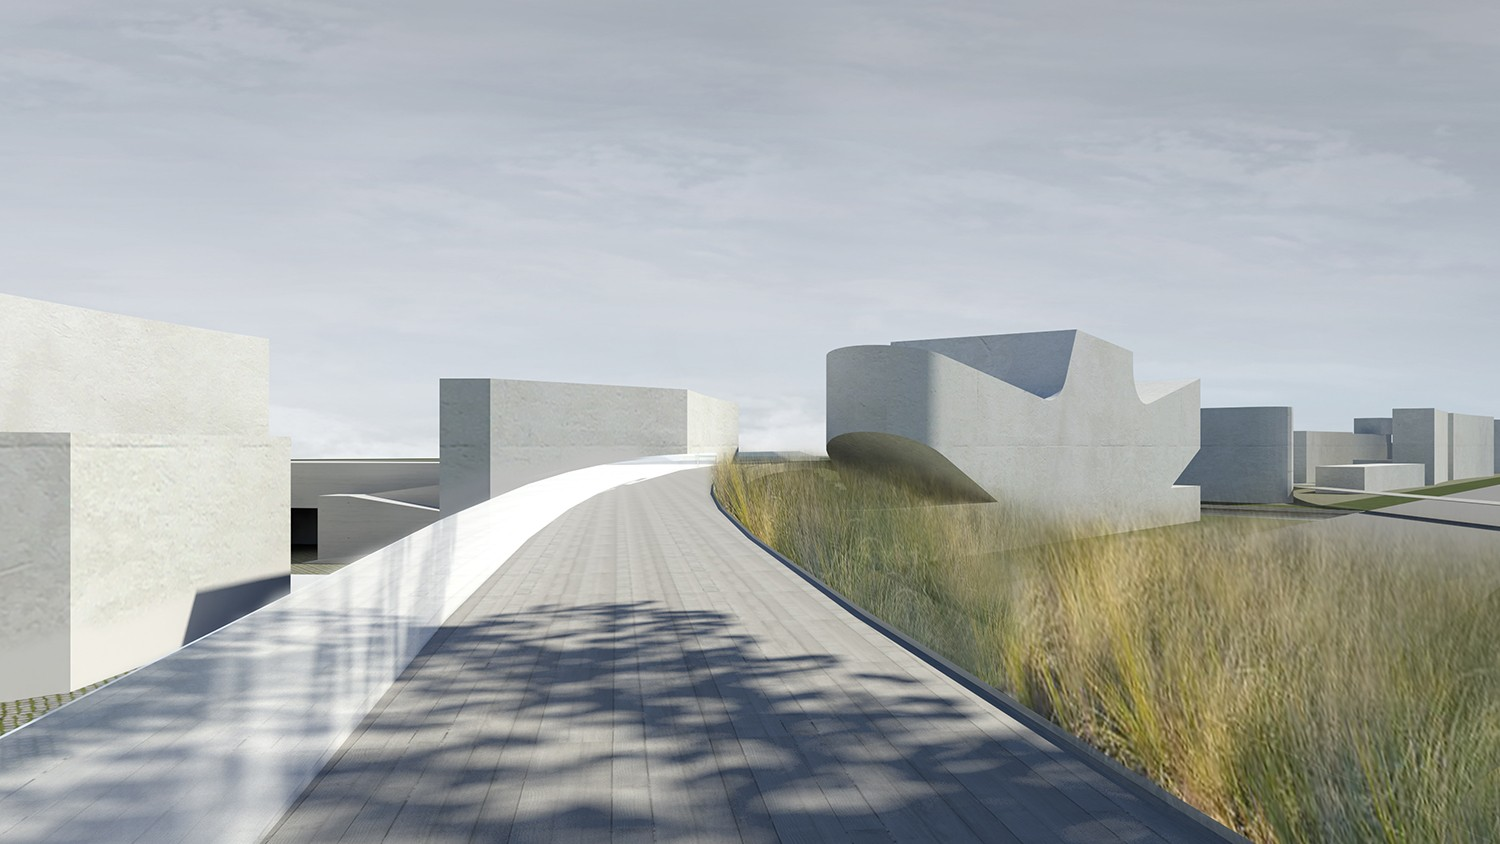 https://s3.us-east-2.amazonaws.com/steven-holl/uploads/projects/project-images/StevenHollArchitects_Shanghai_Camera02BridgeandTheater_WH.jpg